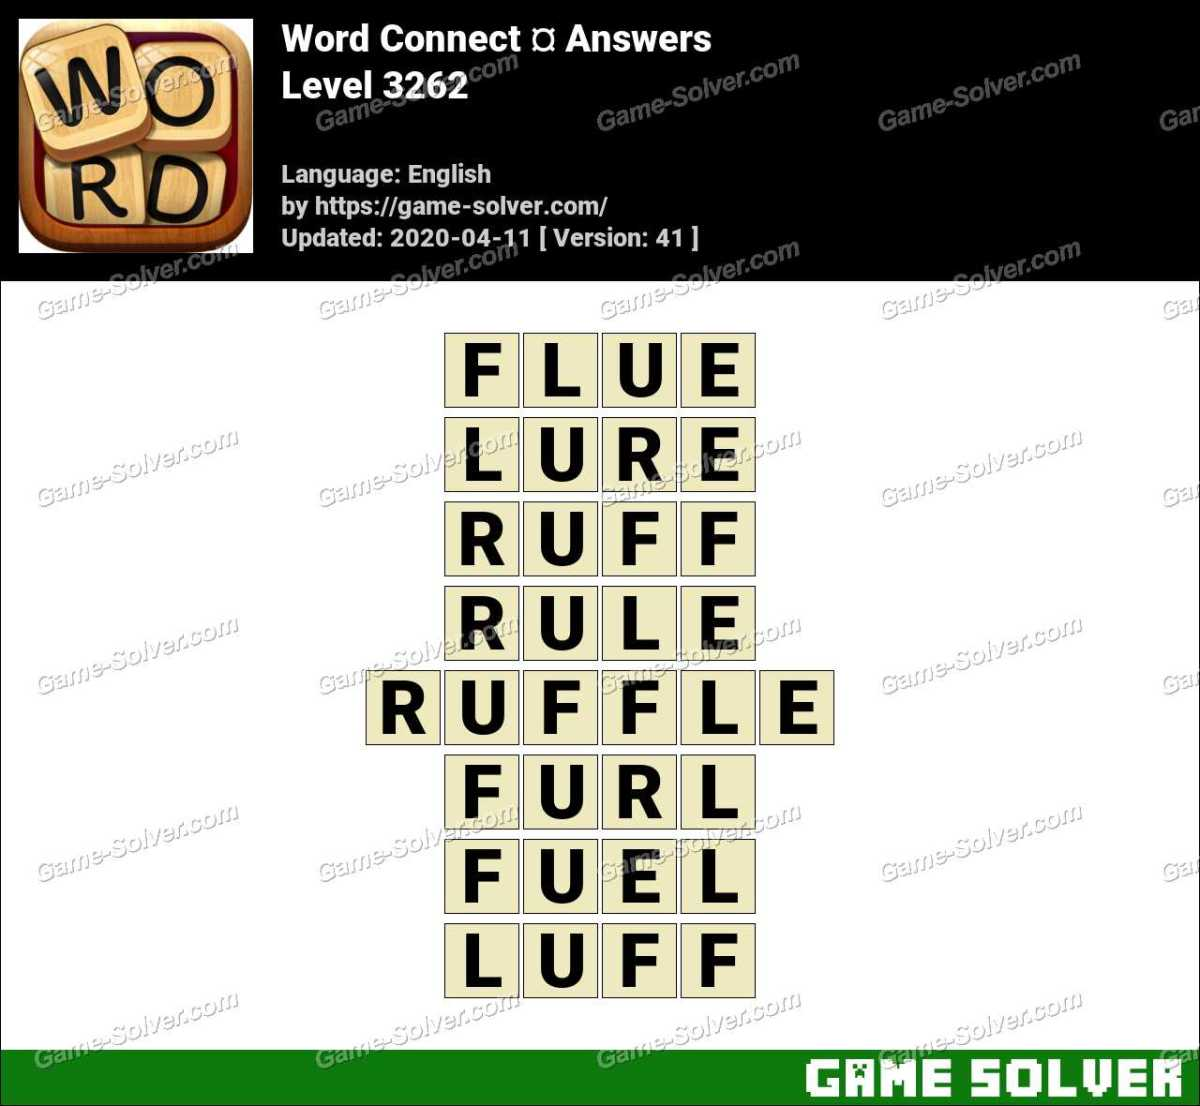 Word Connect Level 3262 Answers